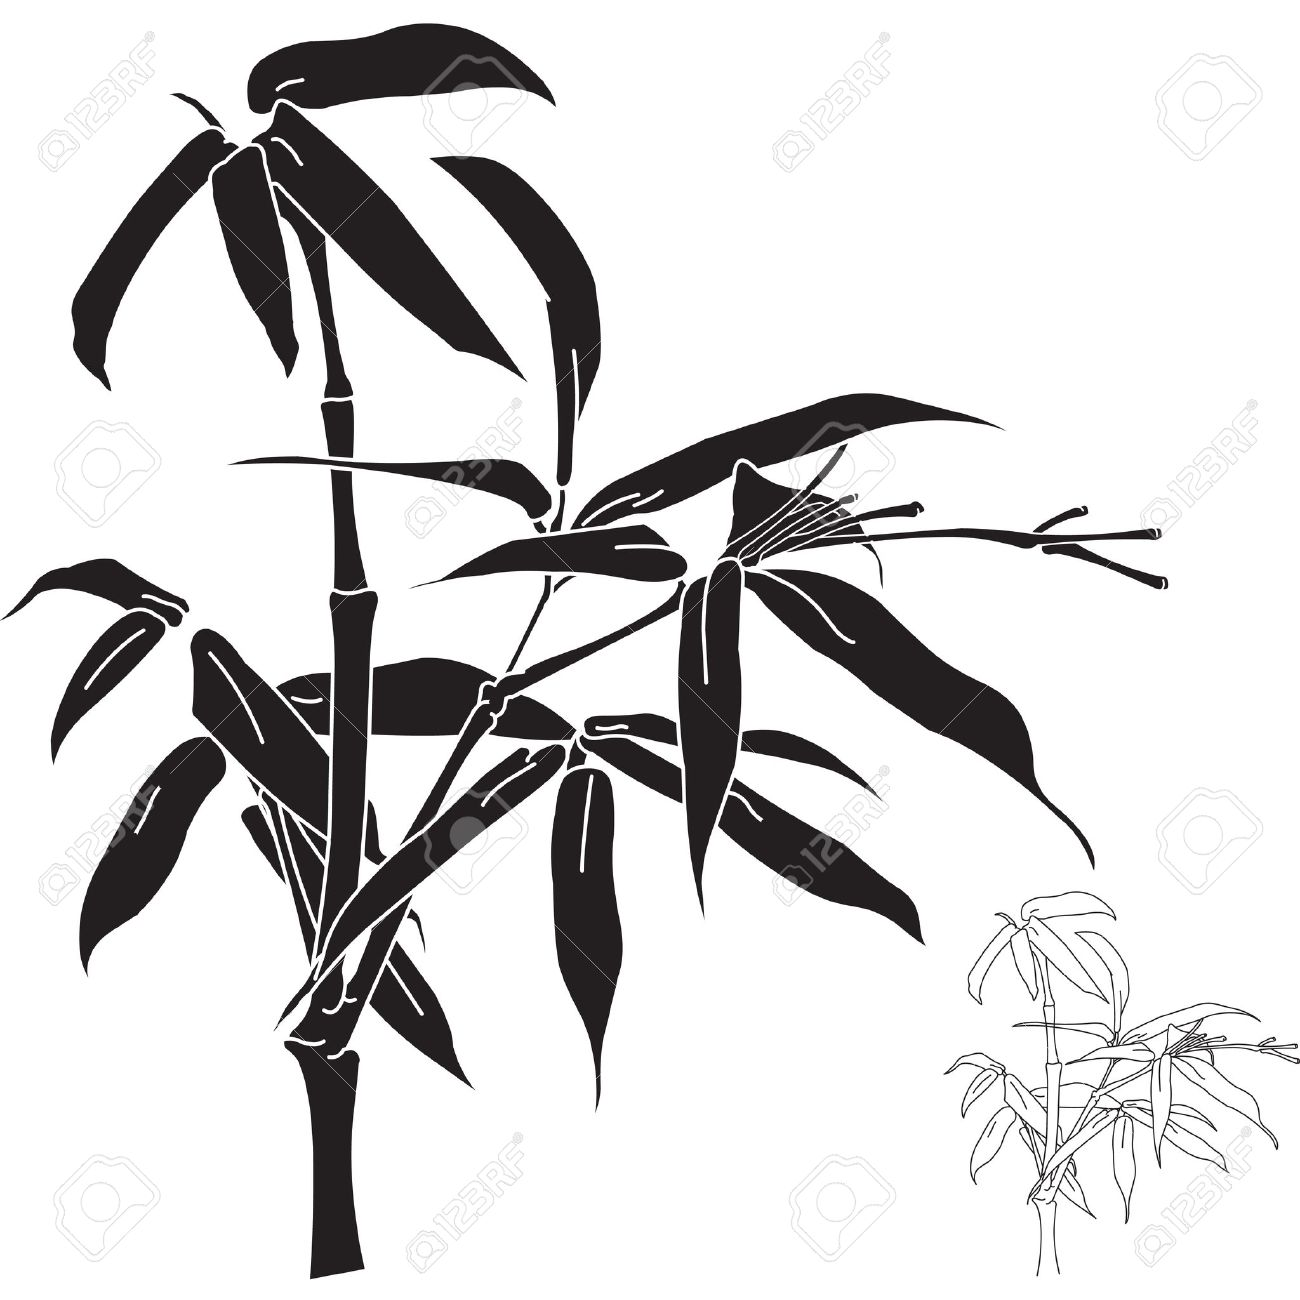 . Bamboo clipart silhouette